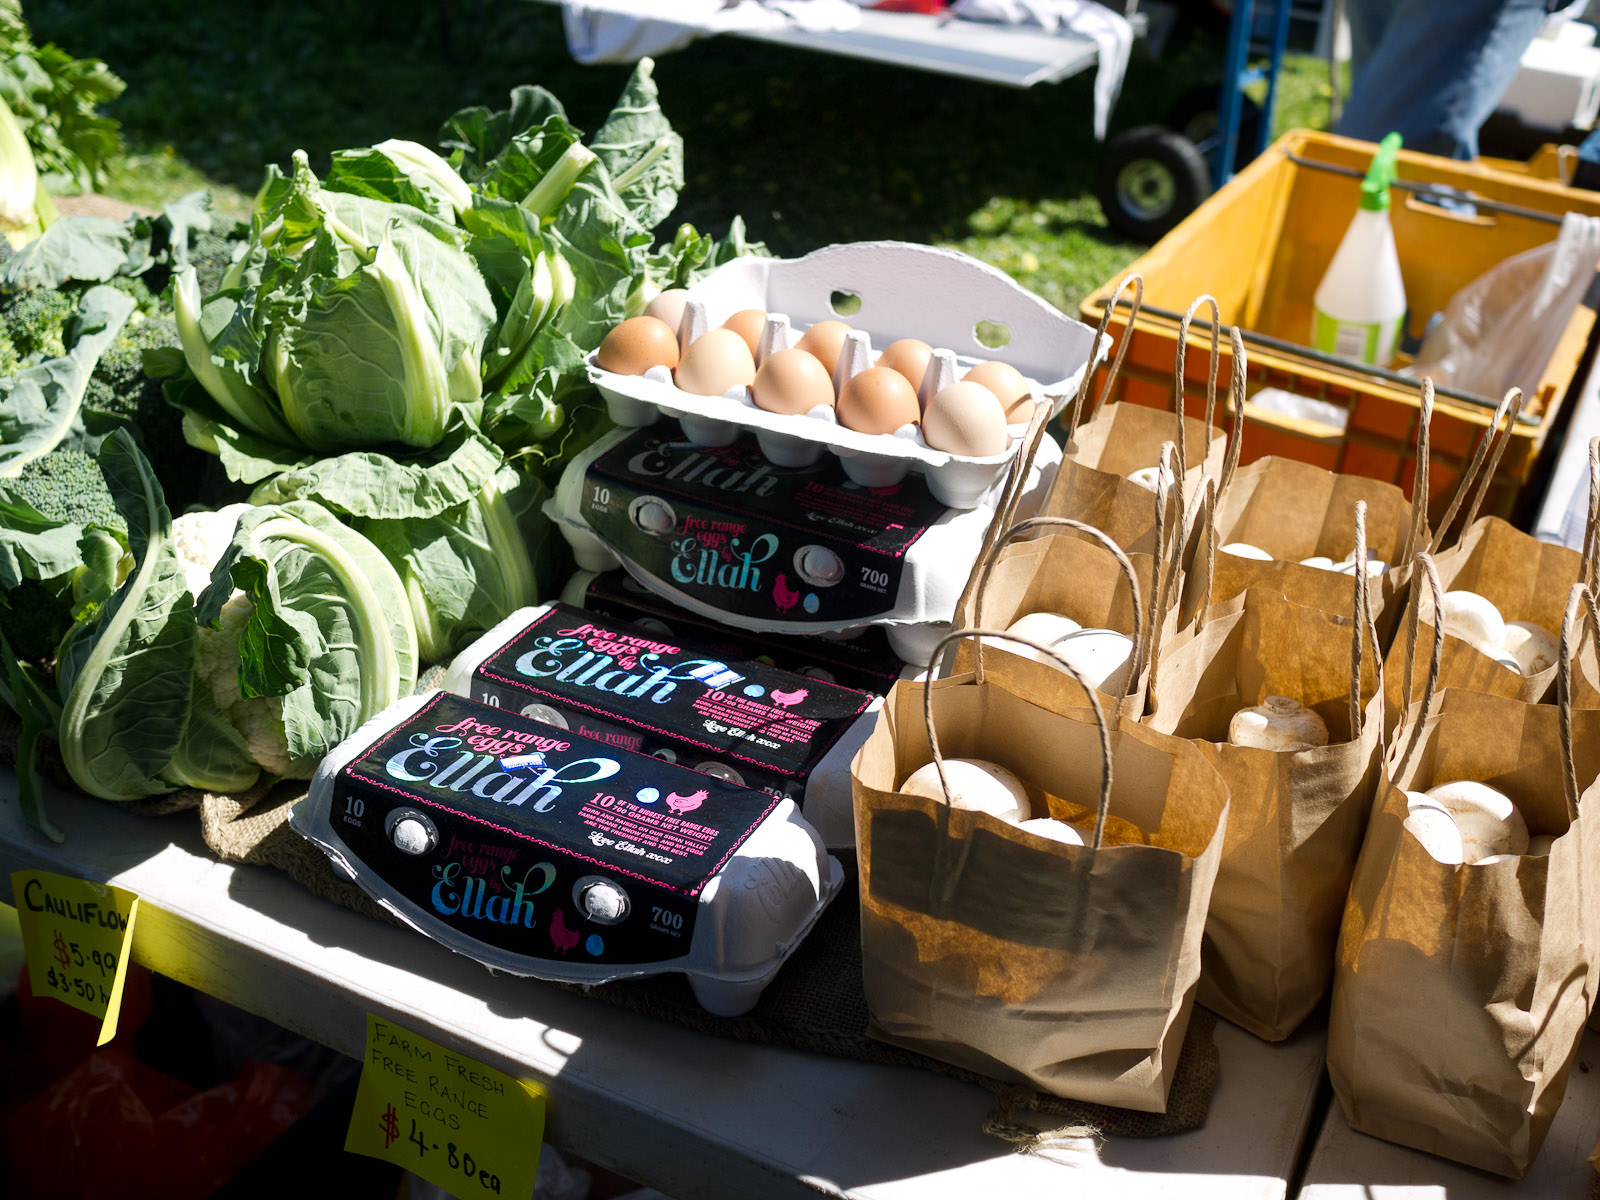 Locally grown vegetables and Eggs by Ellah